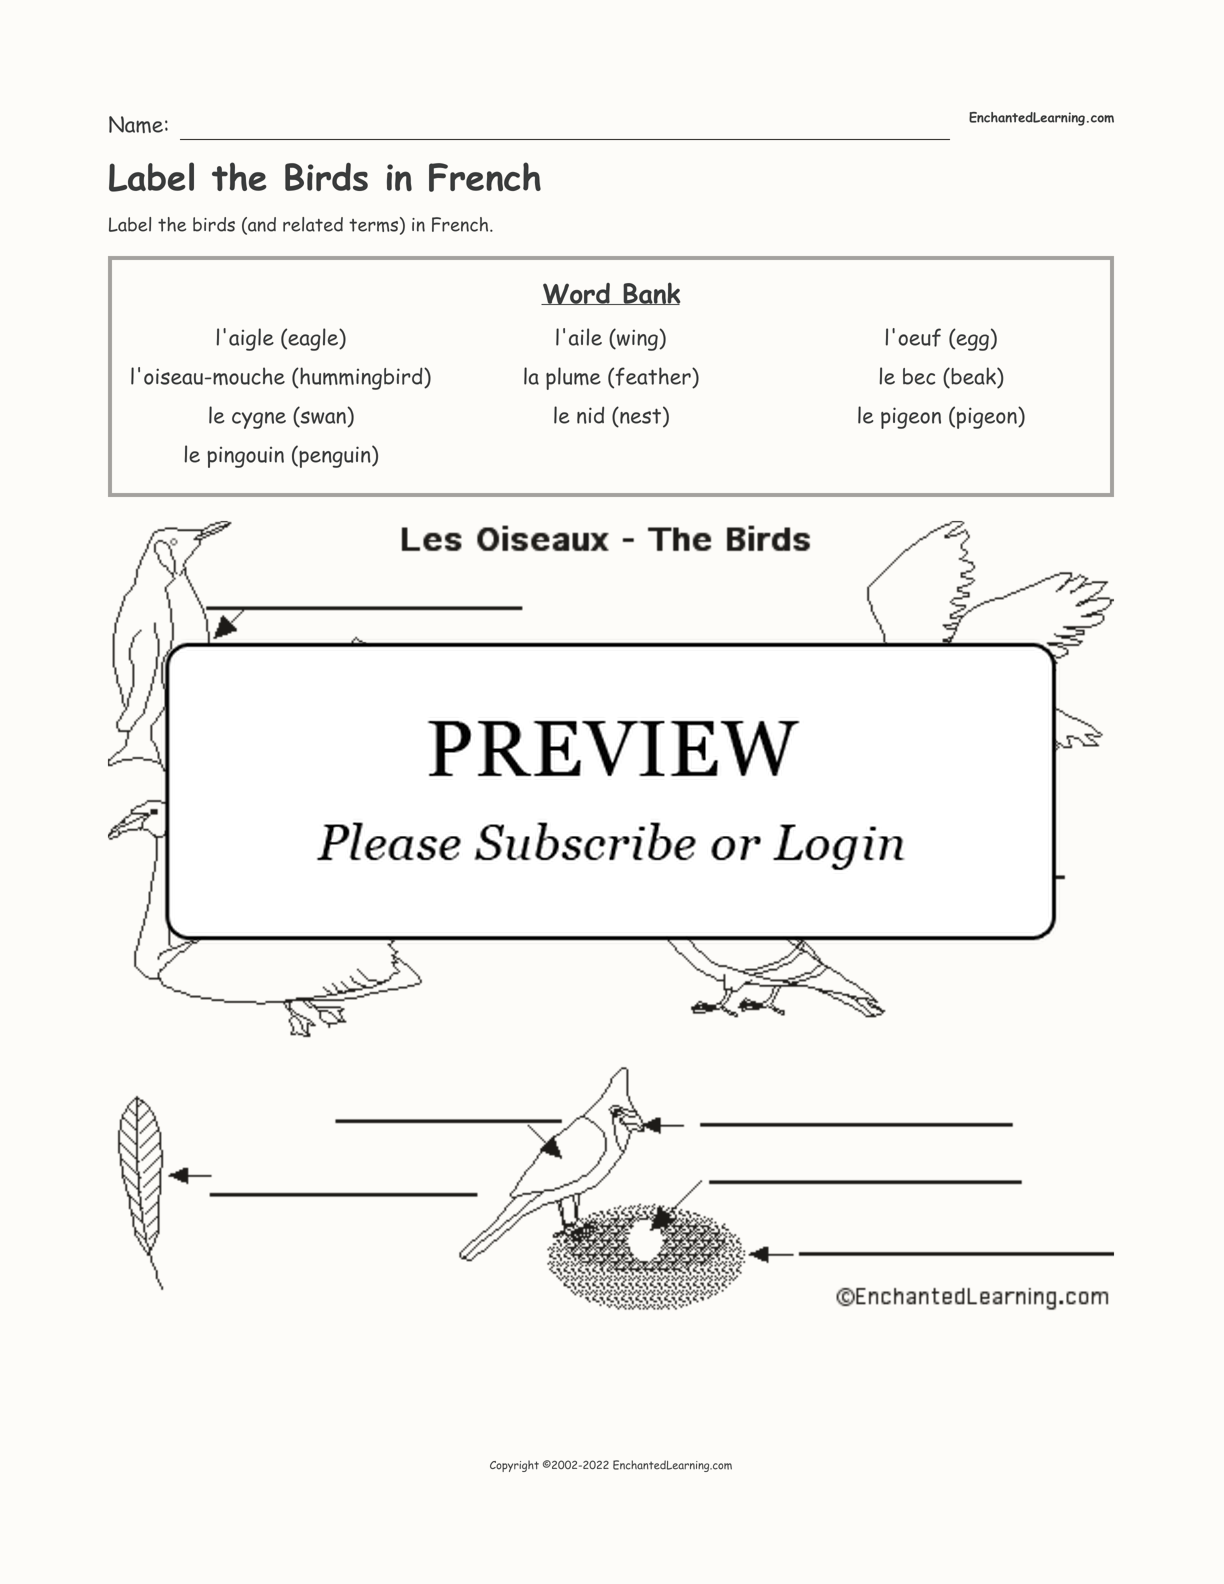 Label the Birds in French interactive worksheet page 1